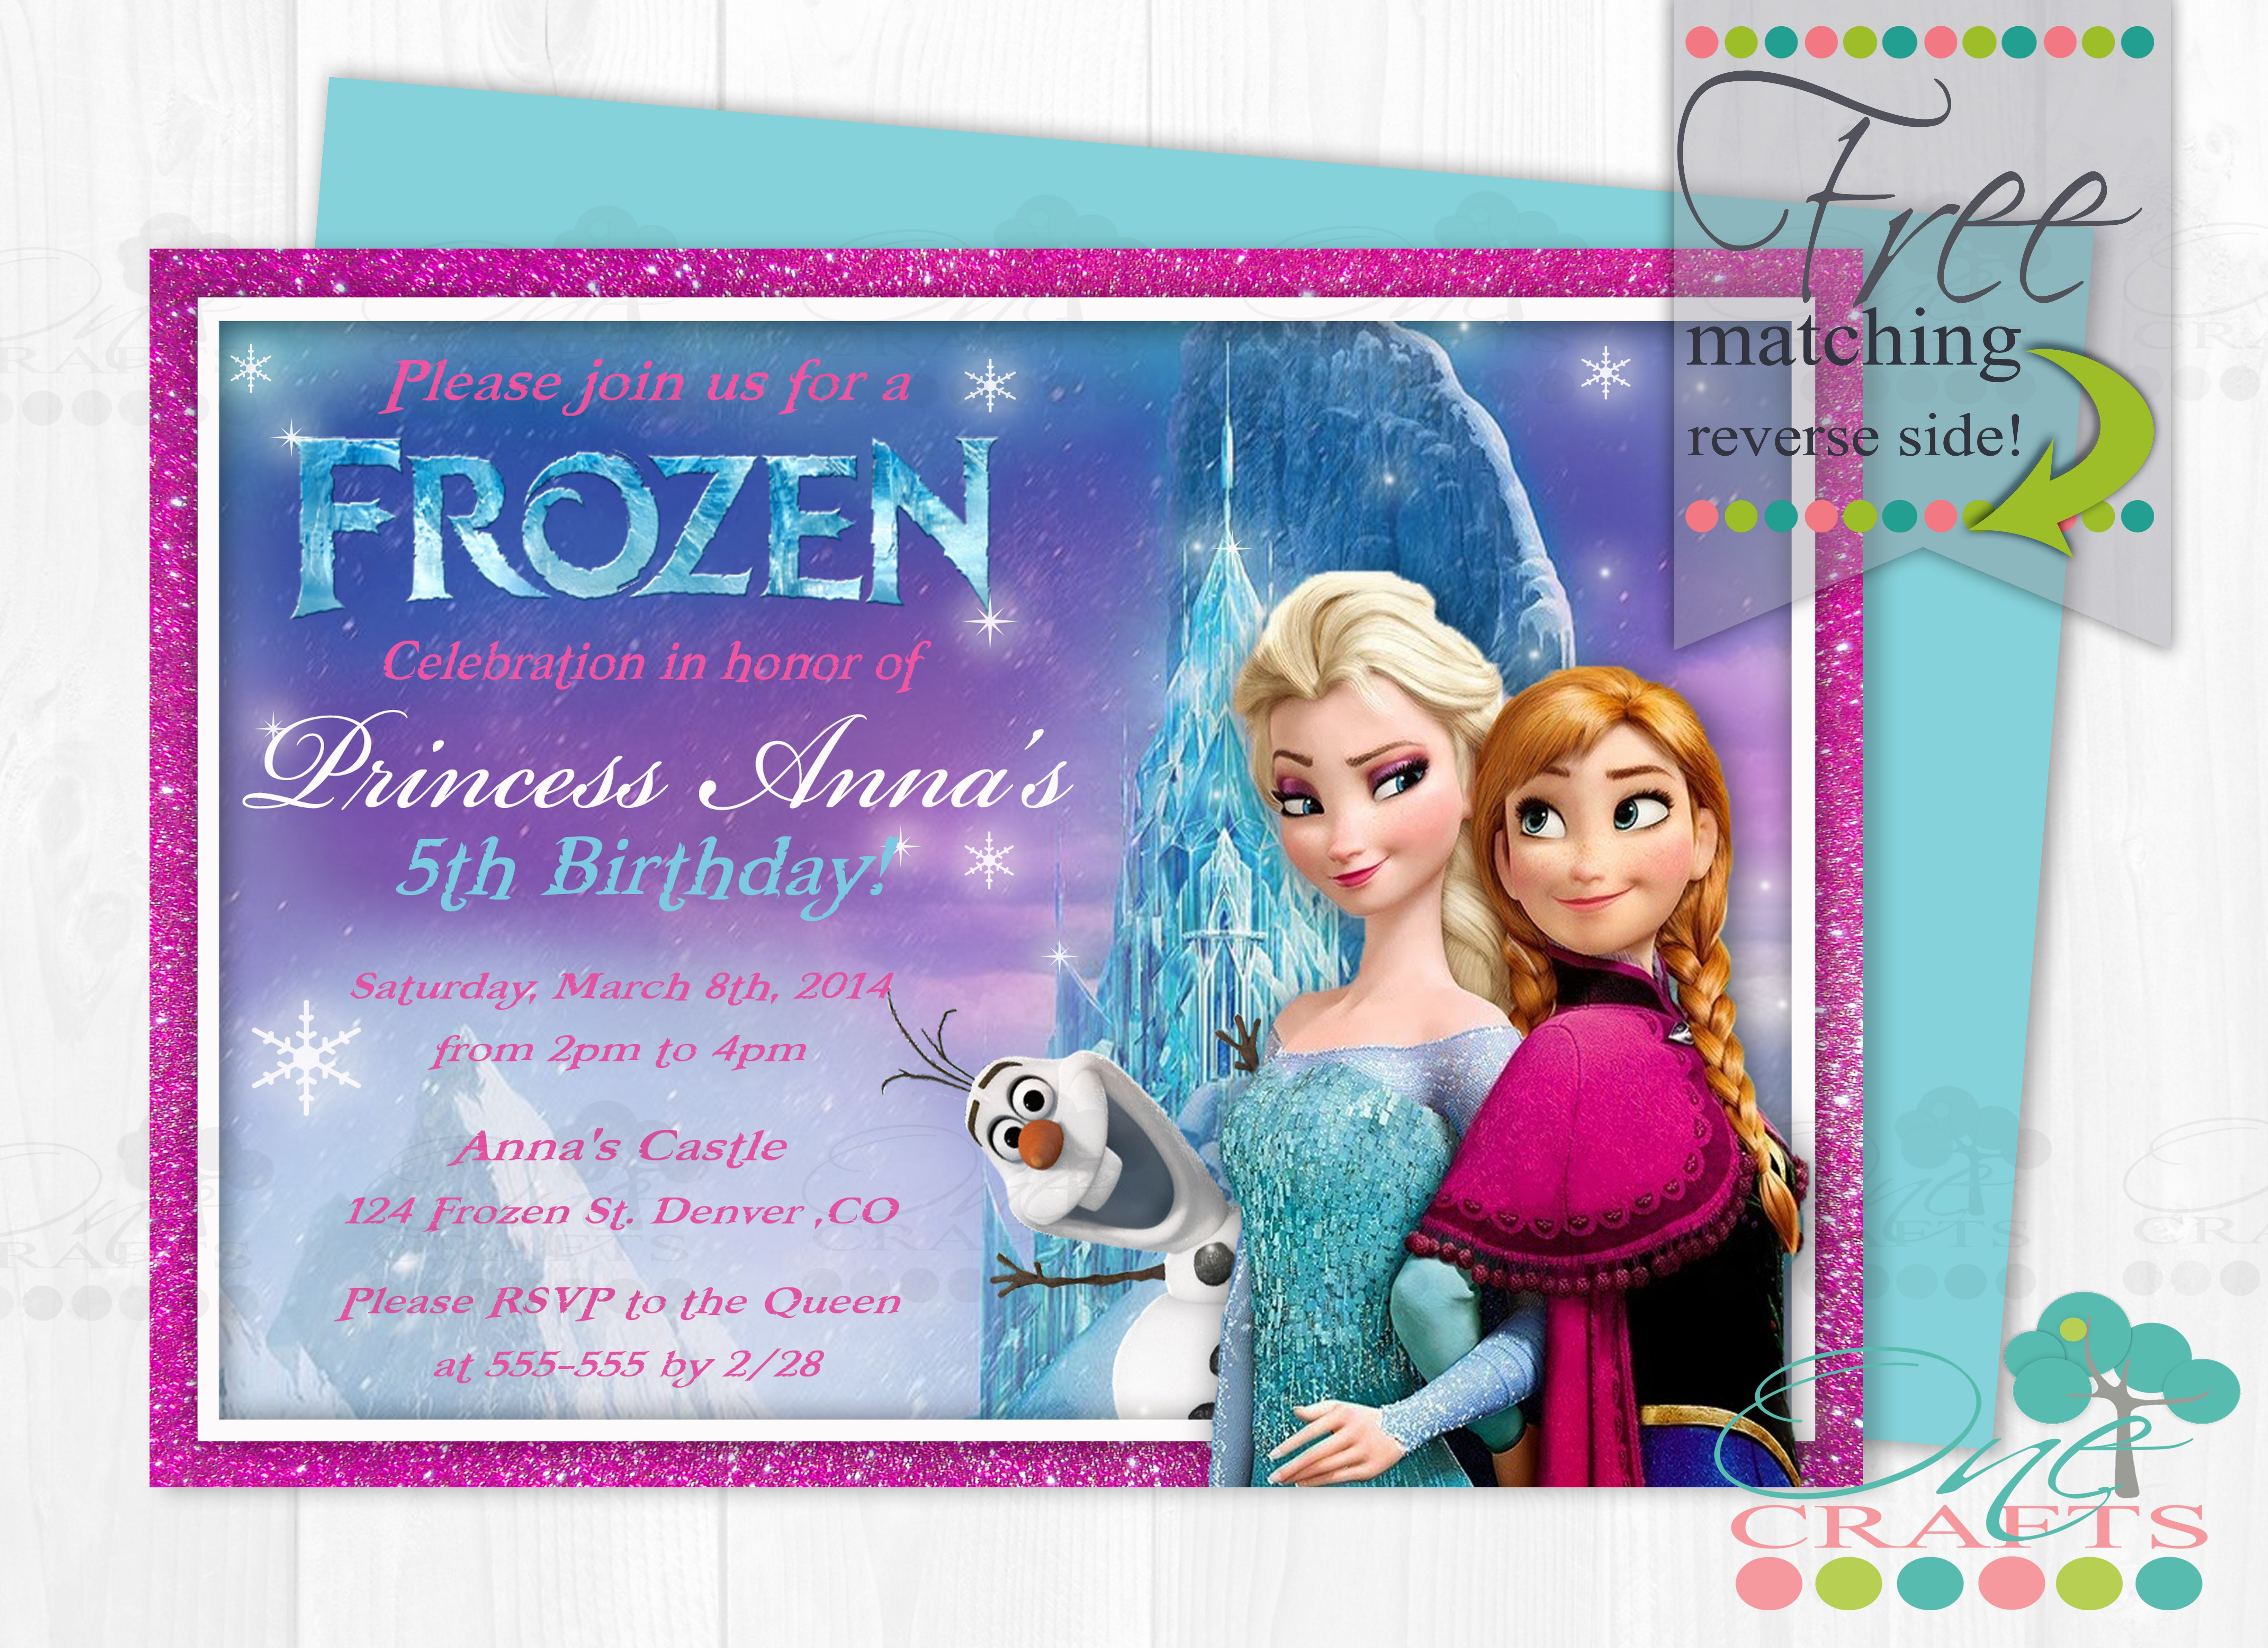 Glitter Frame Elsa And Anna Frozen Invite By One Crafts The Cold